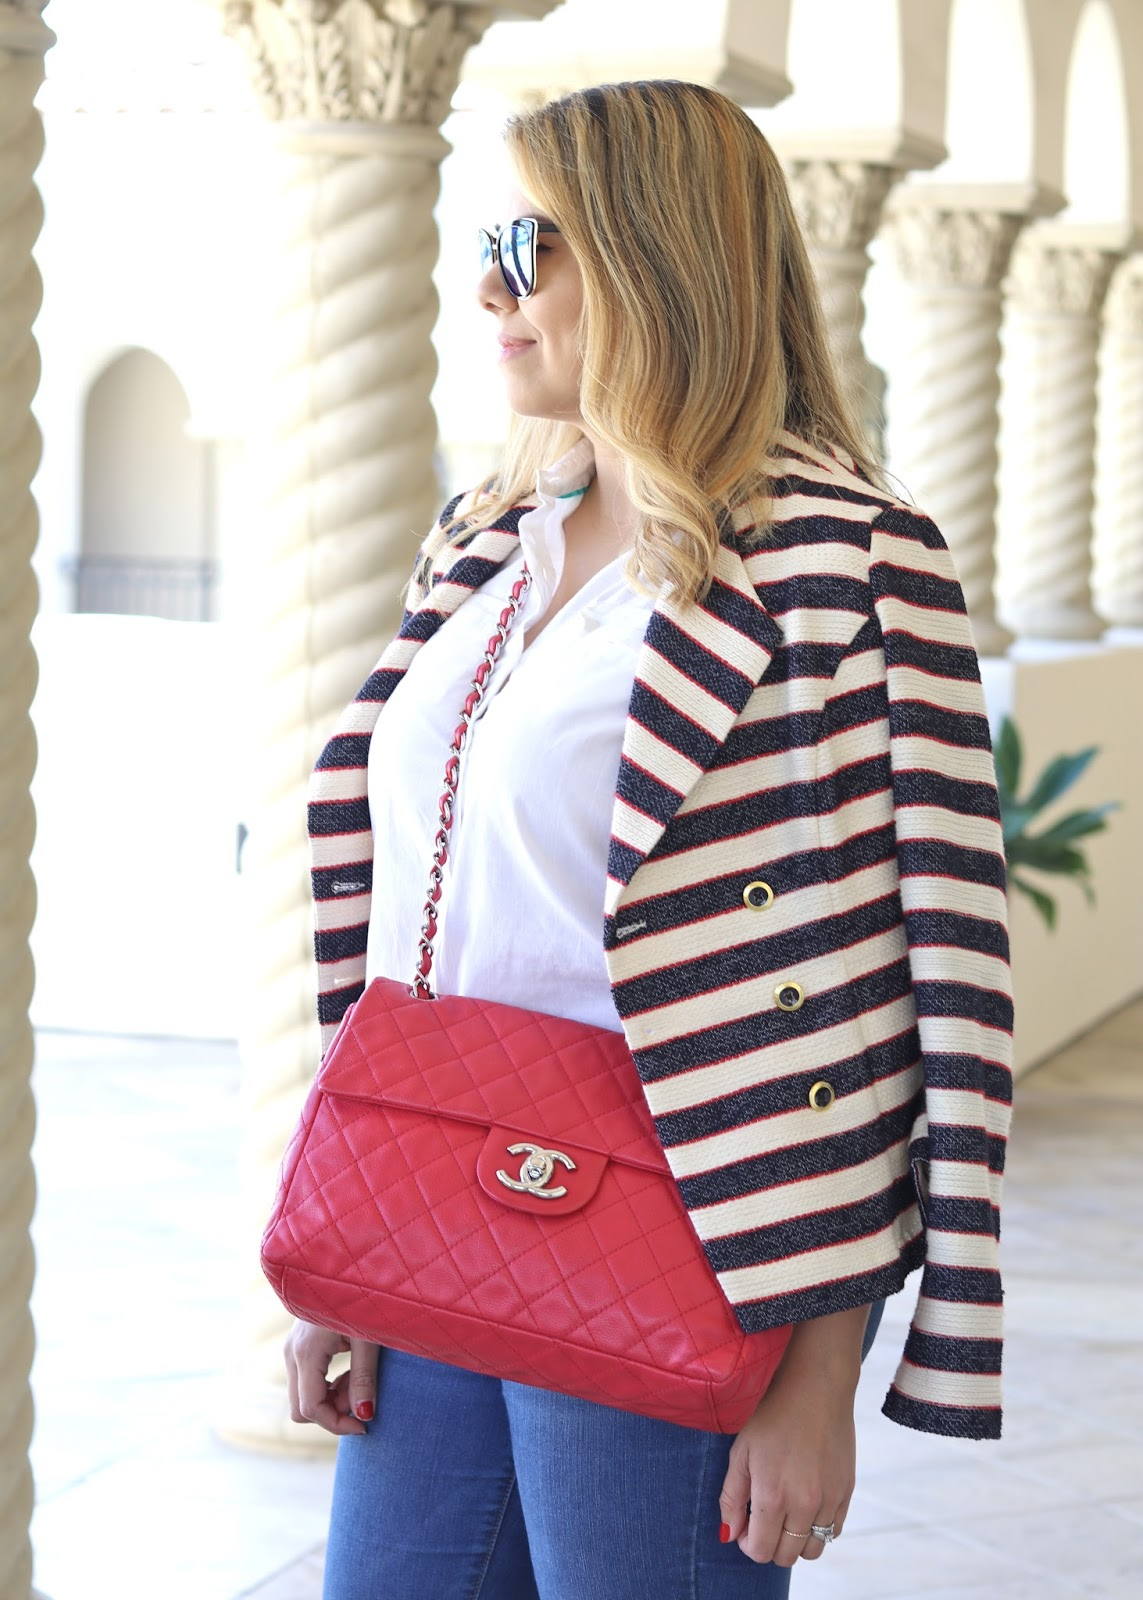 CHANEL RED SOFT CAVIAR LEATHER MAXI BAG, what to wear with a red bag, red bag outfit ideas